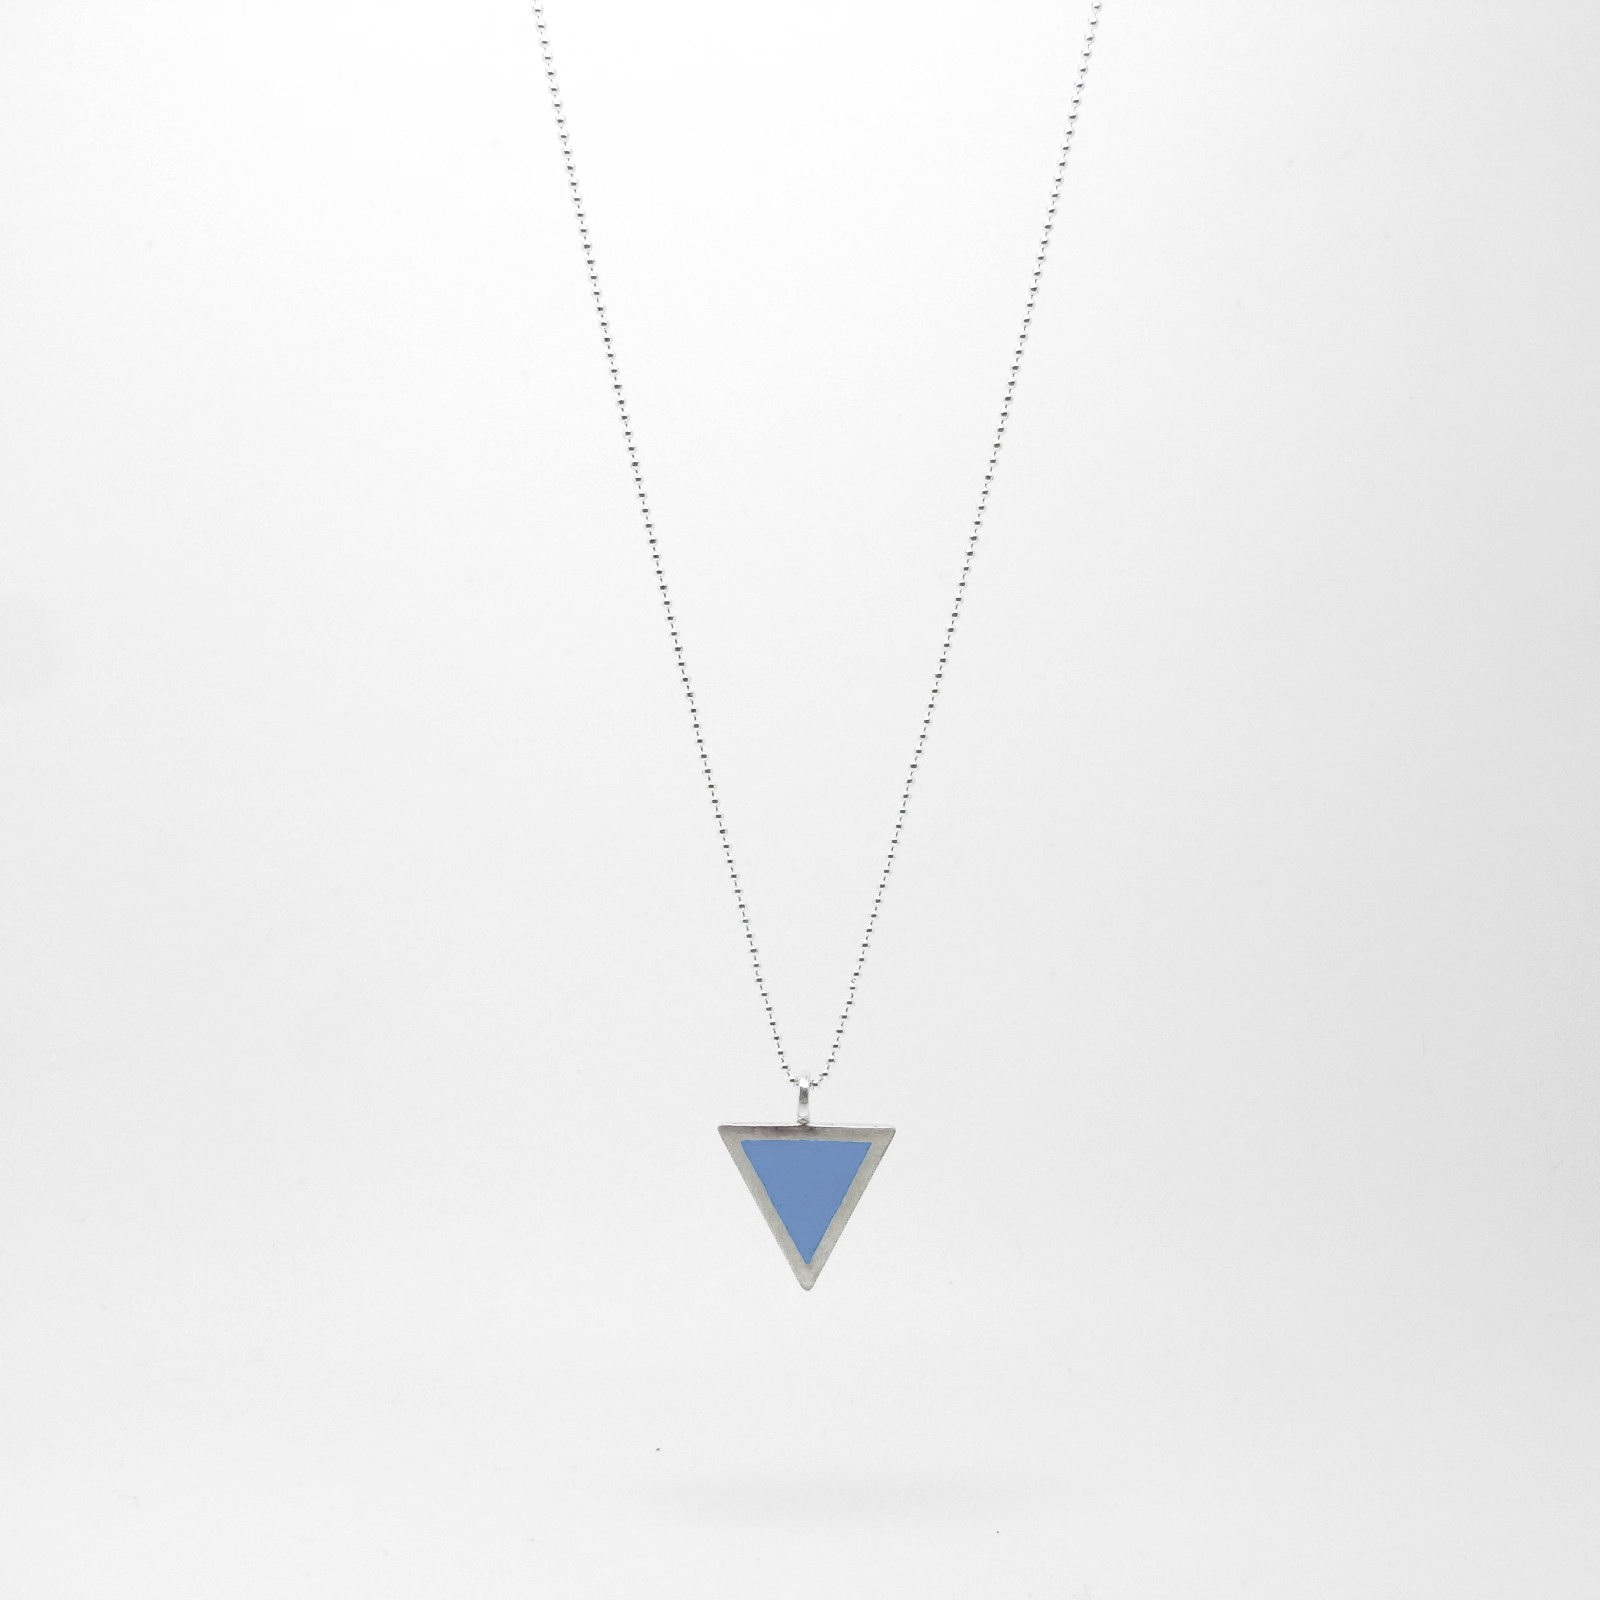 SALE - Triangle Necklace Soft Blue